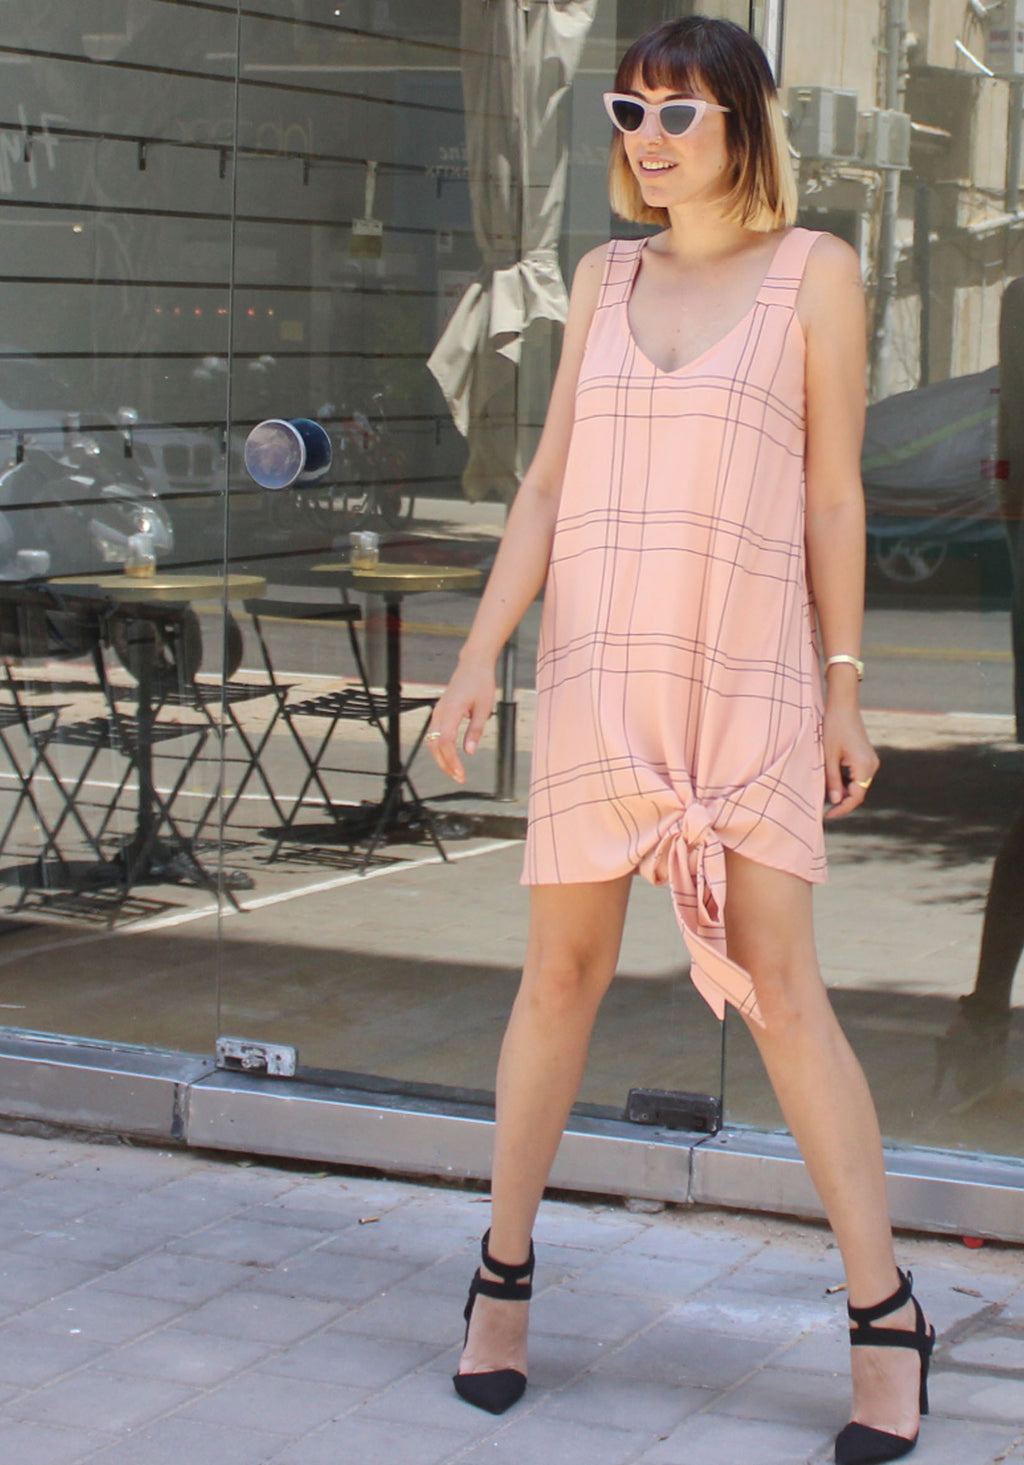 Blush plaids Nicki dress - ניקי משבצות פודרה